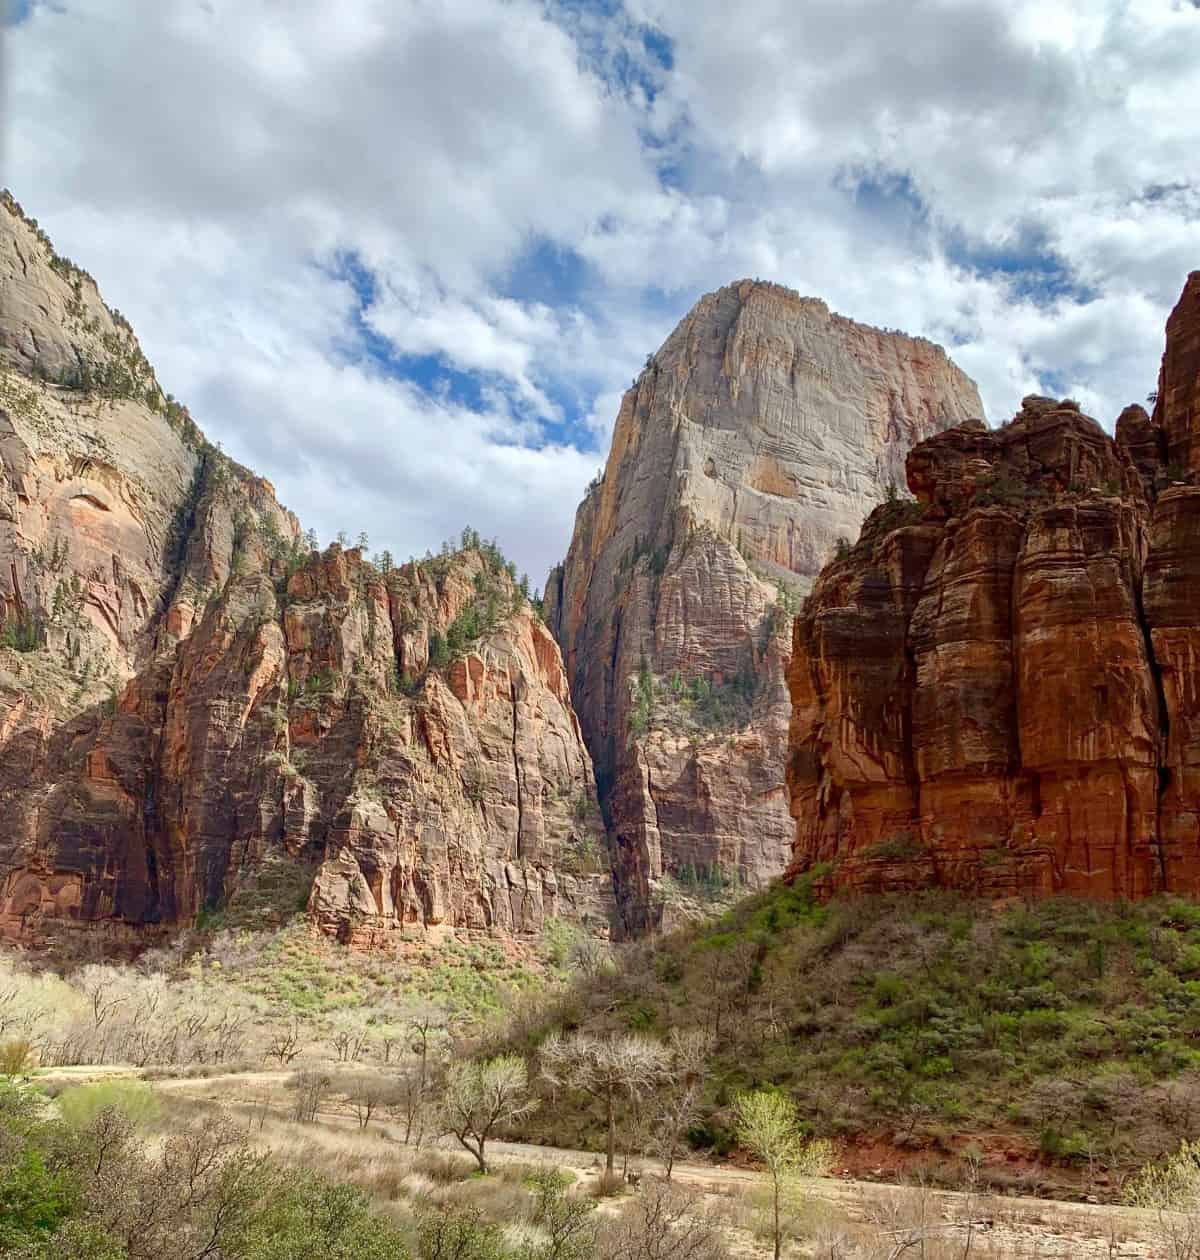 Zion National Park is an easy day trip from St. George, Utah